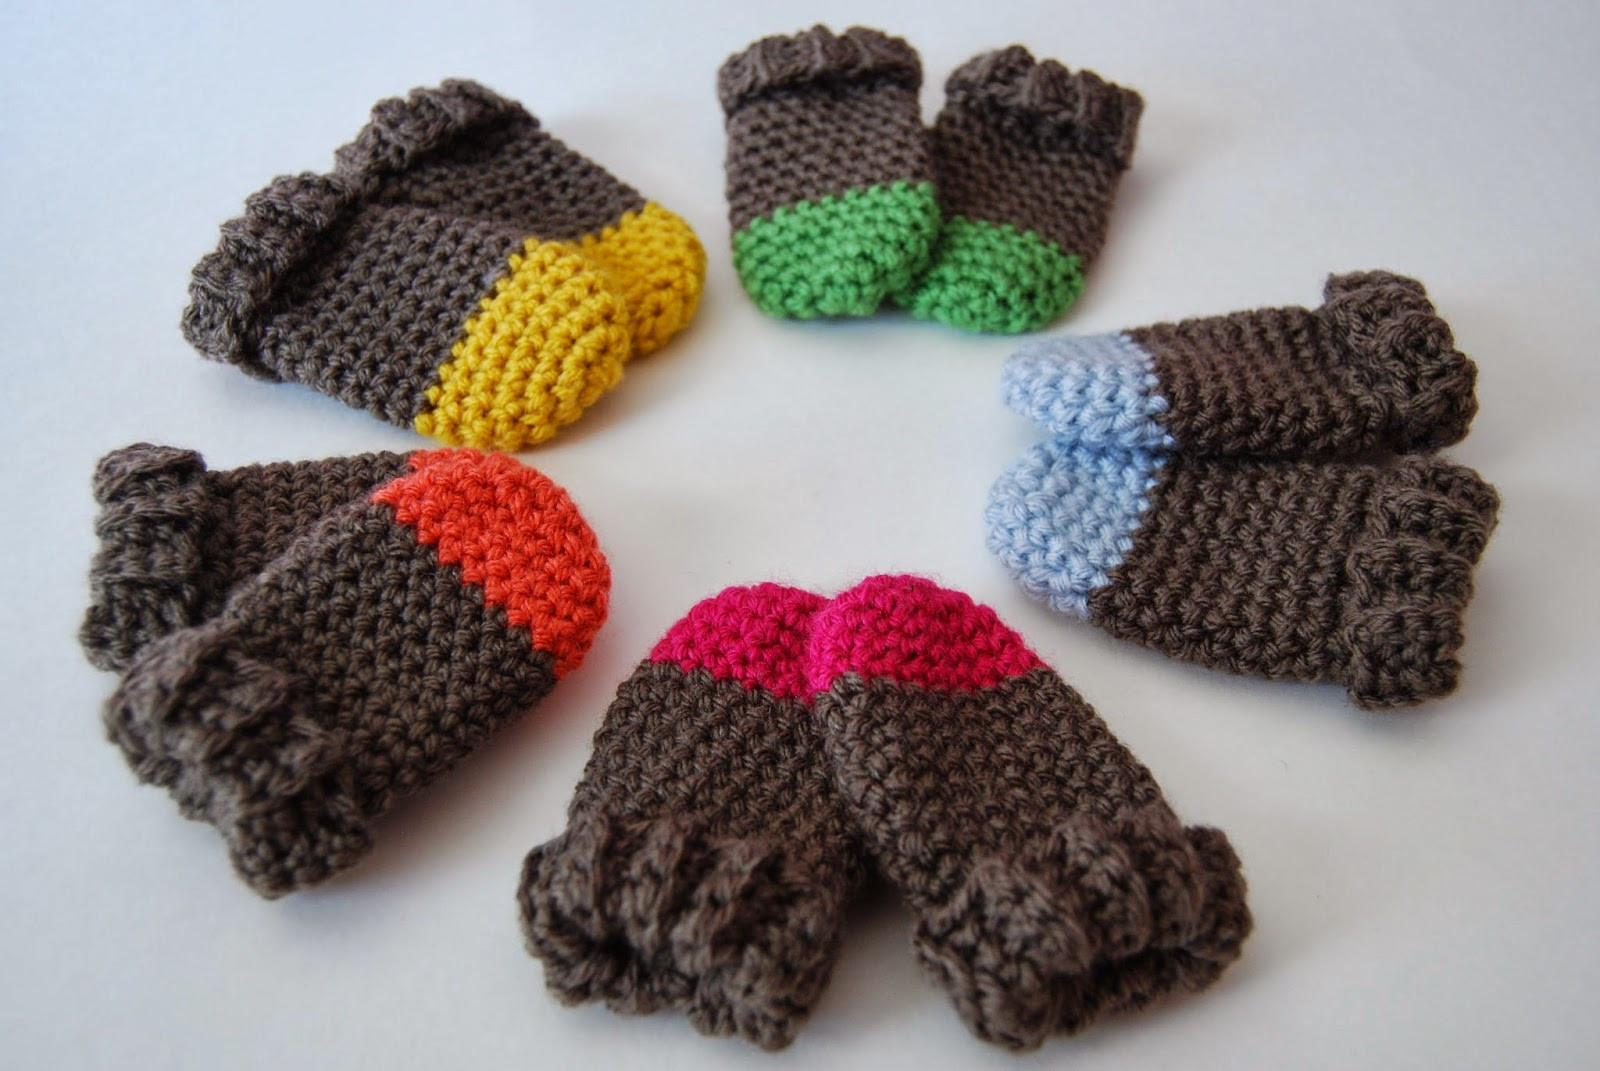 Inspirational Tangled Happy Free Patterns Crochet toddler Mittens Of Awesome 41 Pictures Crochet toddler Mittens